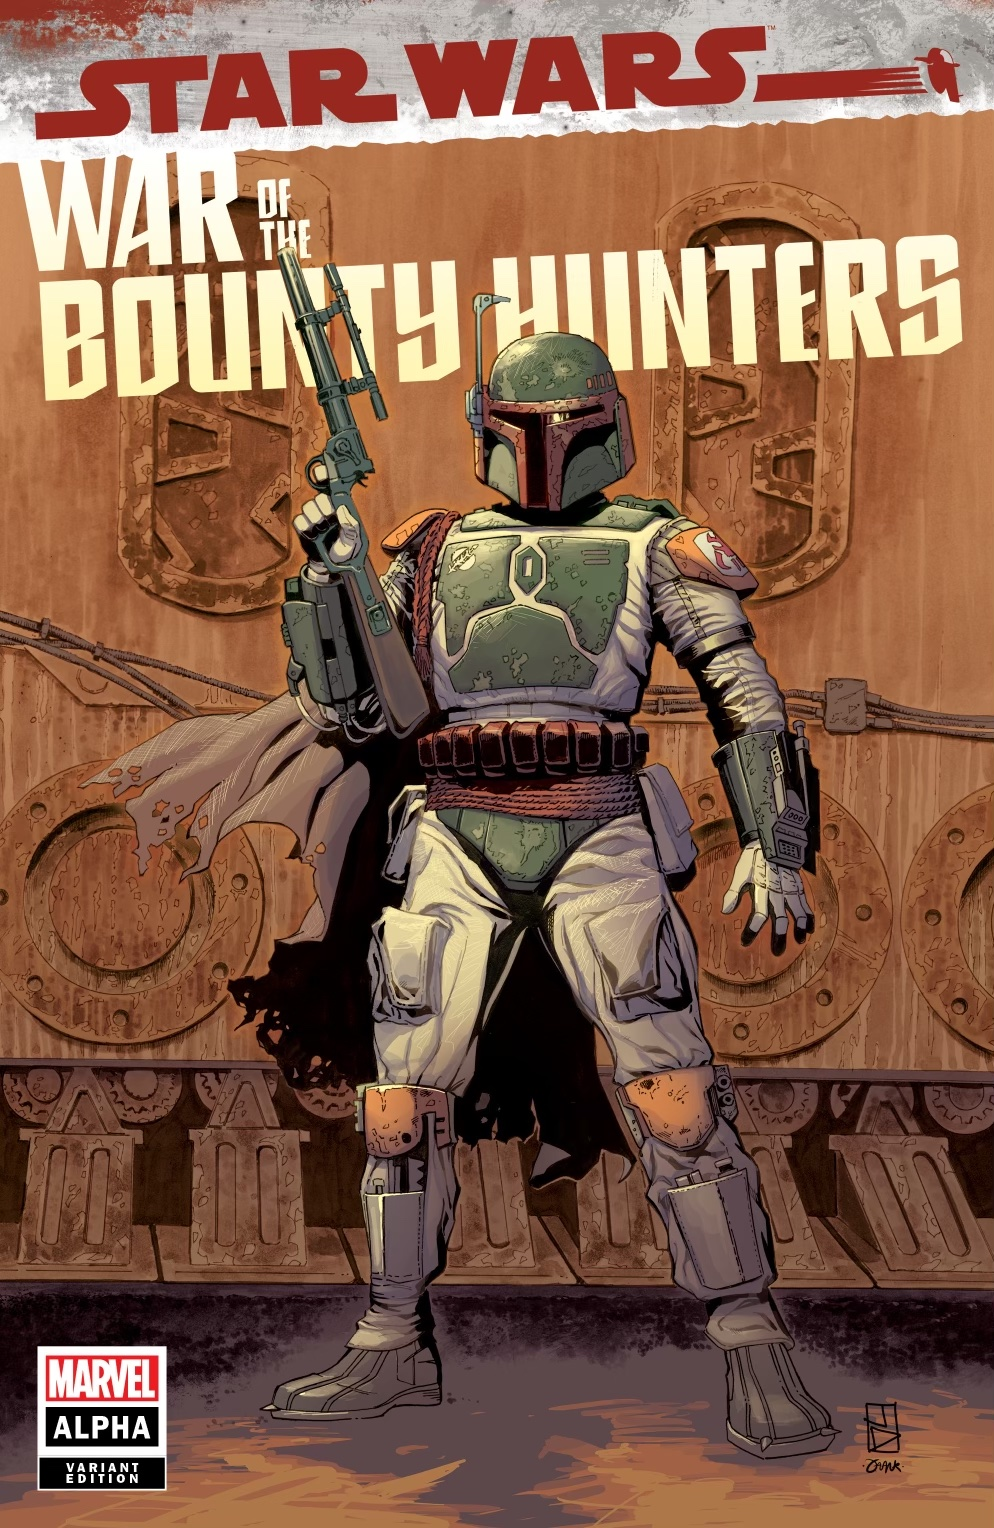 War of the Bounty Hunters Alpha #1 (Jan Duursema Kowabunga Comics Variant Cover) (05.05.2021)